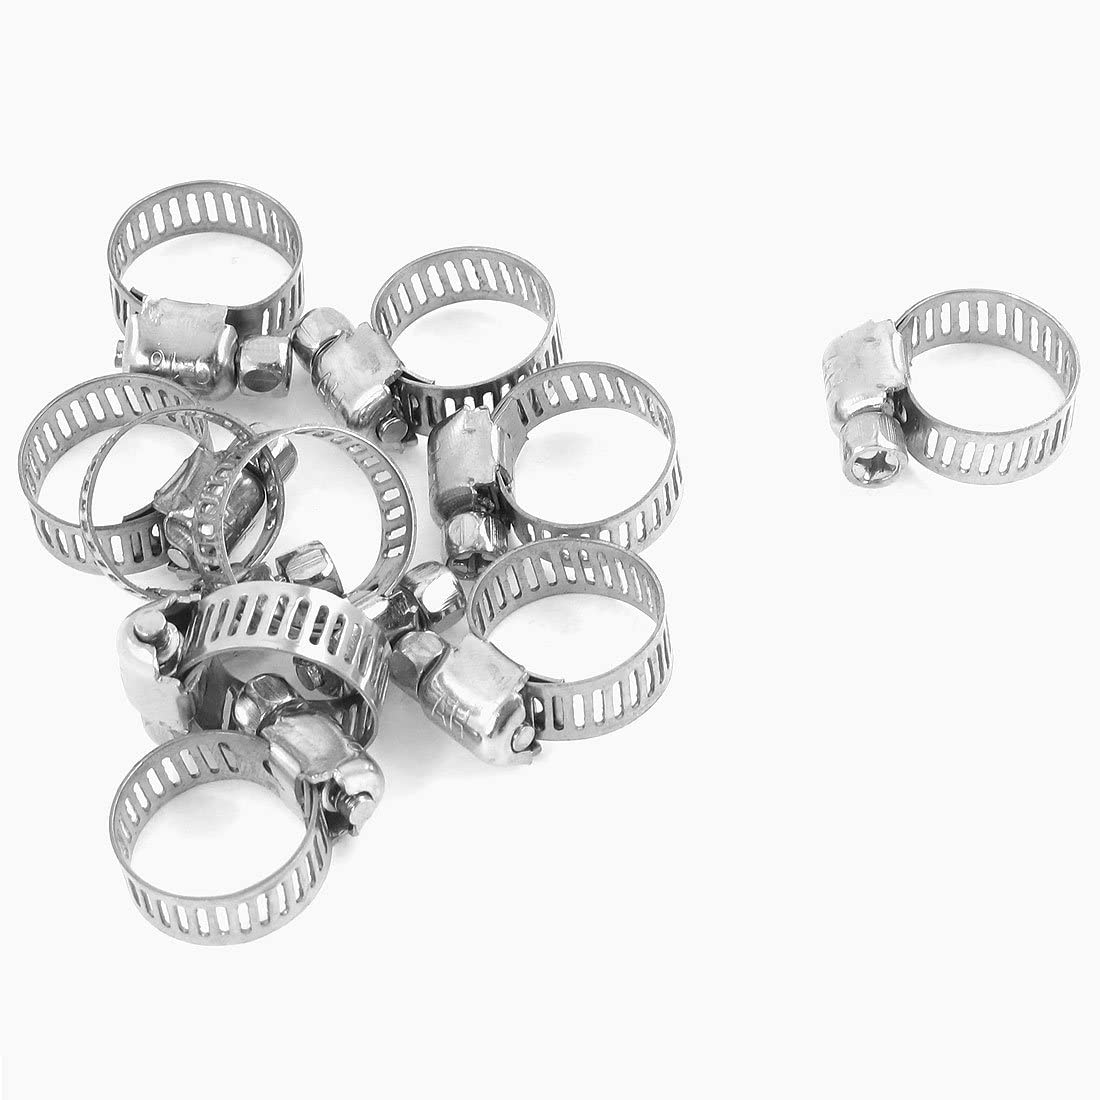 Uxcell Adjustable Stainless Steel Worm Drive Hose Clamp (10 Piece), 9mm to 16mm